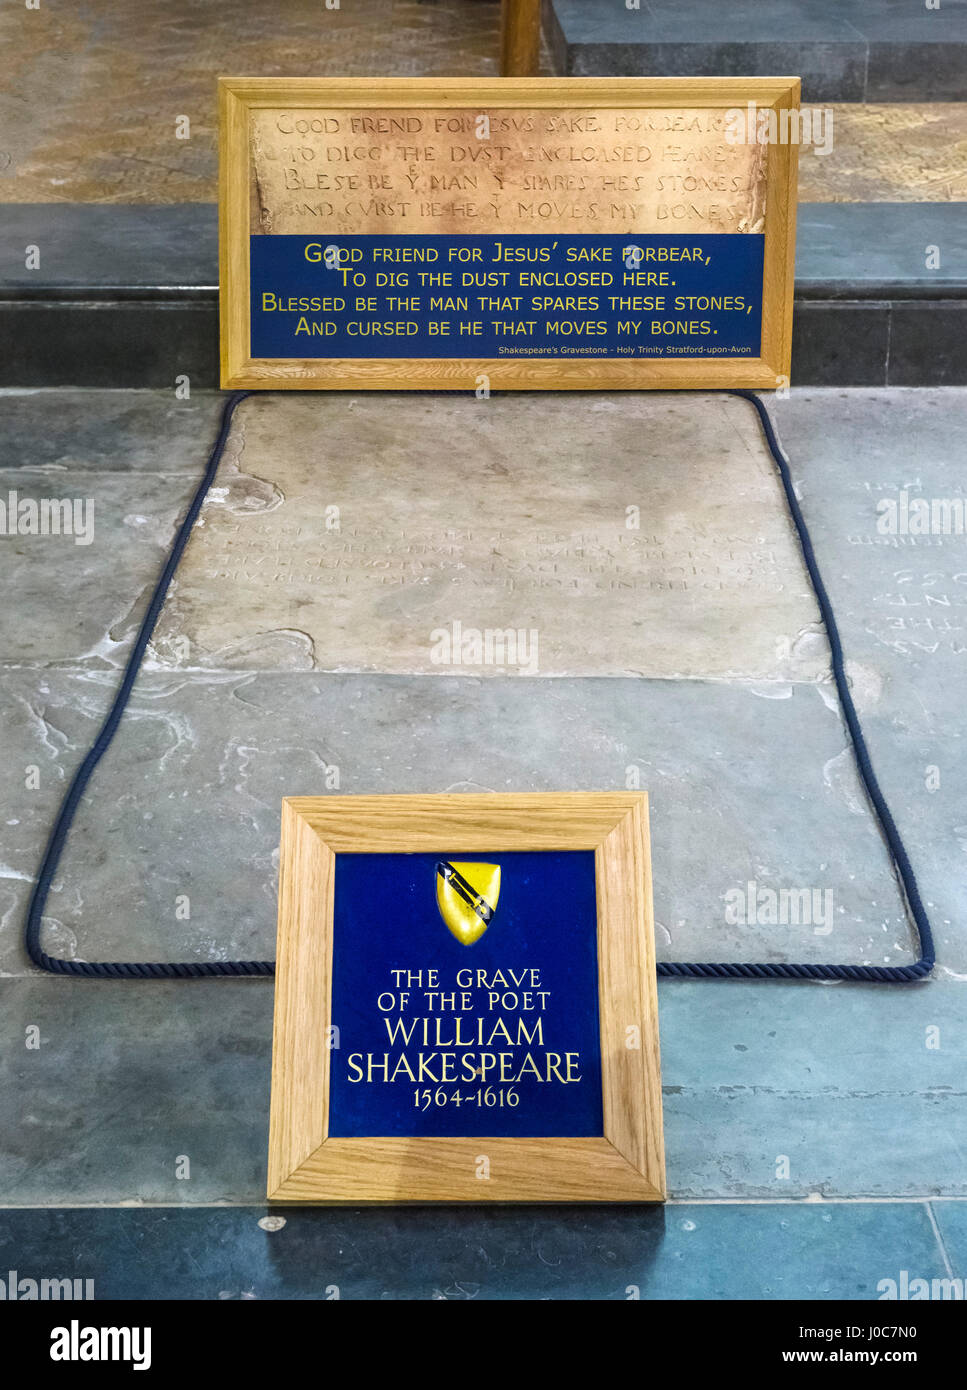 William Shakespeare's Grave. The grave of William Shakespeare in Holy Trinity Church, Stratford-upon-Avon, England, - Stock Image